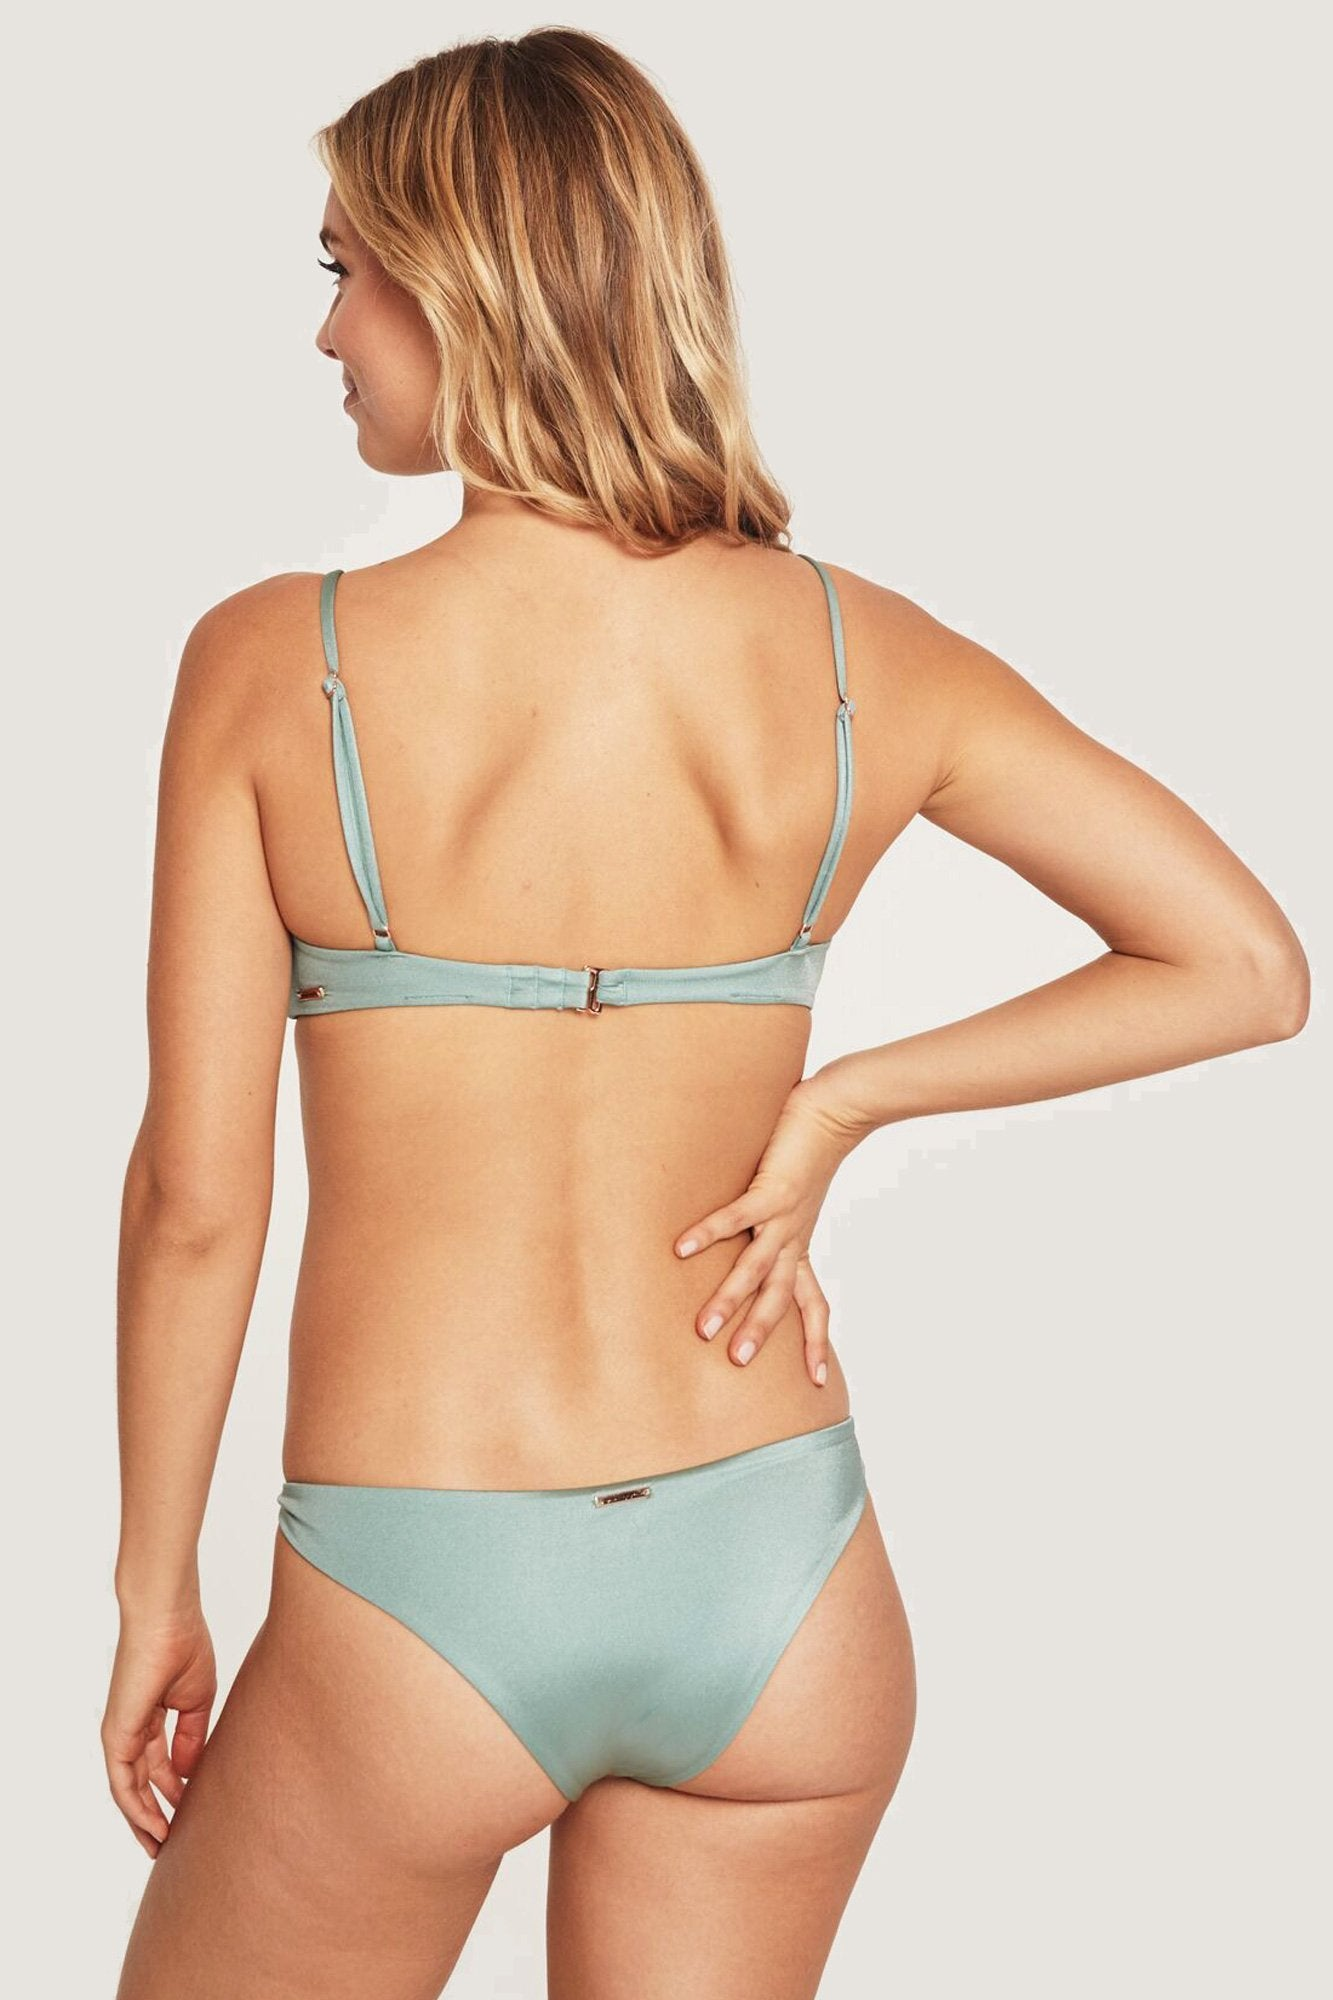 Back view of model wearing light, dusty green, low-rise bikini bottoms featuring knotted side detail and a cheeky cut.